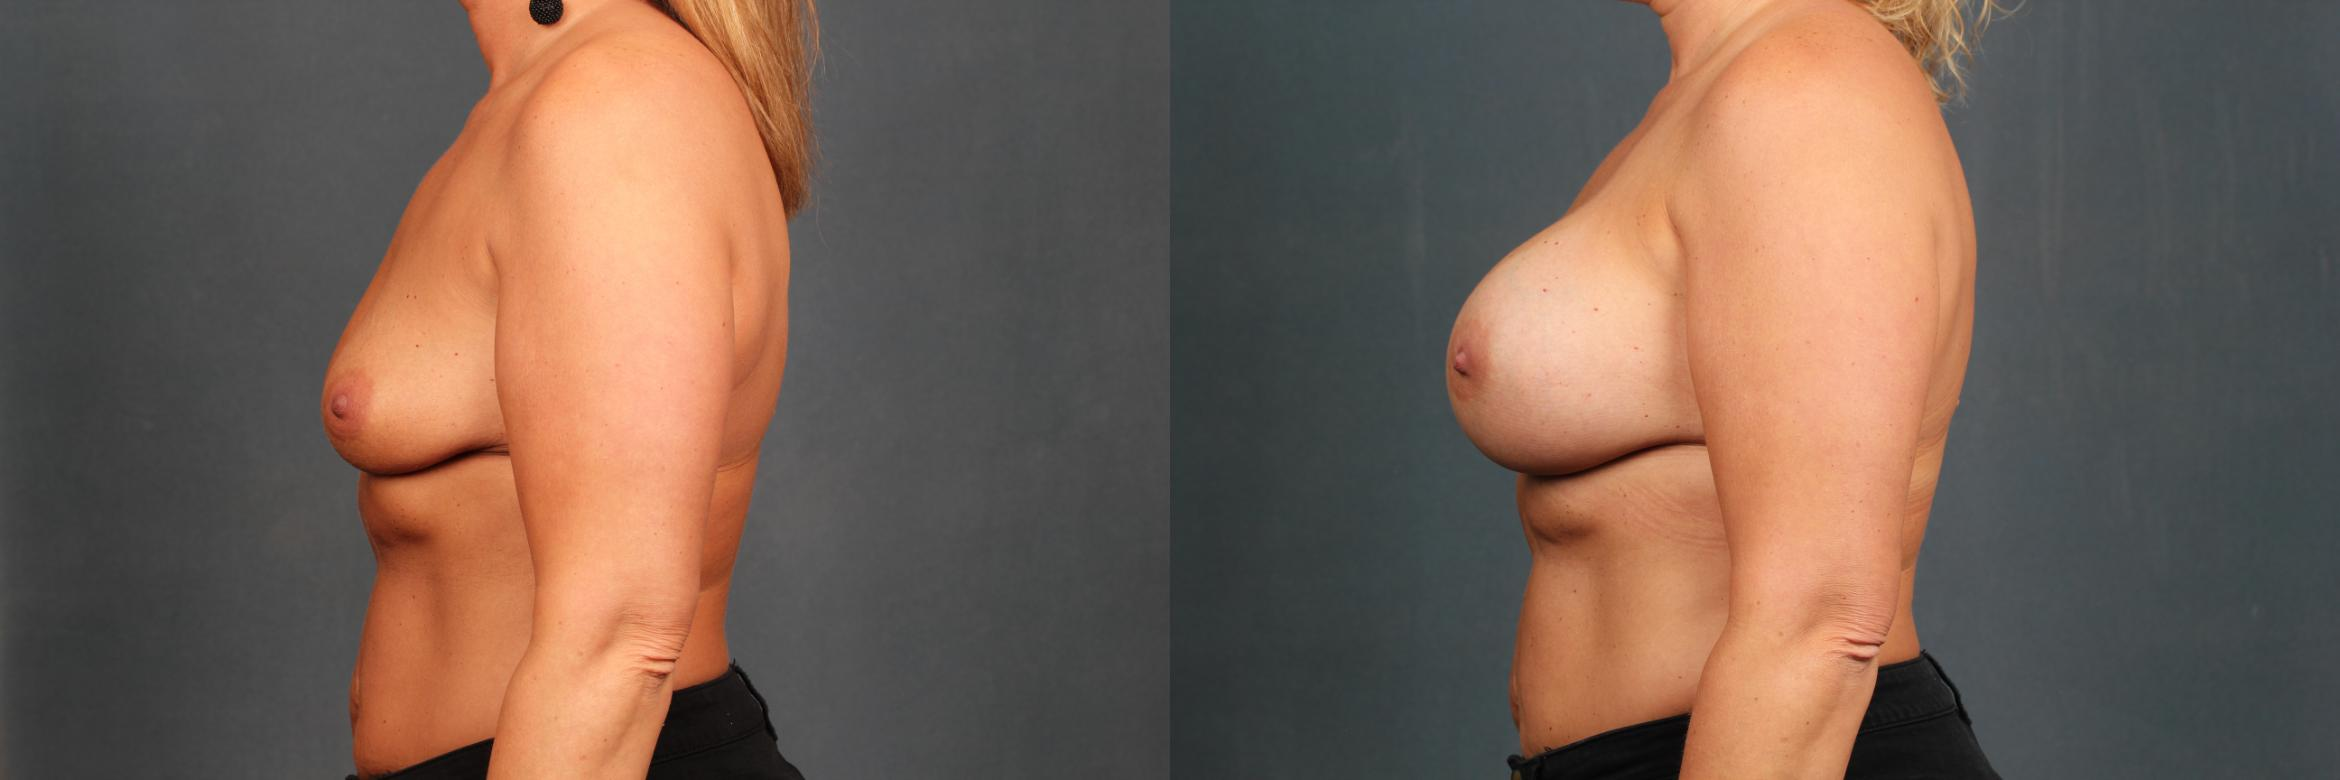 Enlargement - Silicone Case 591 Before & After View #3 | Louisville, KY | CaloAesthetics® Plastic Surgery Center